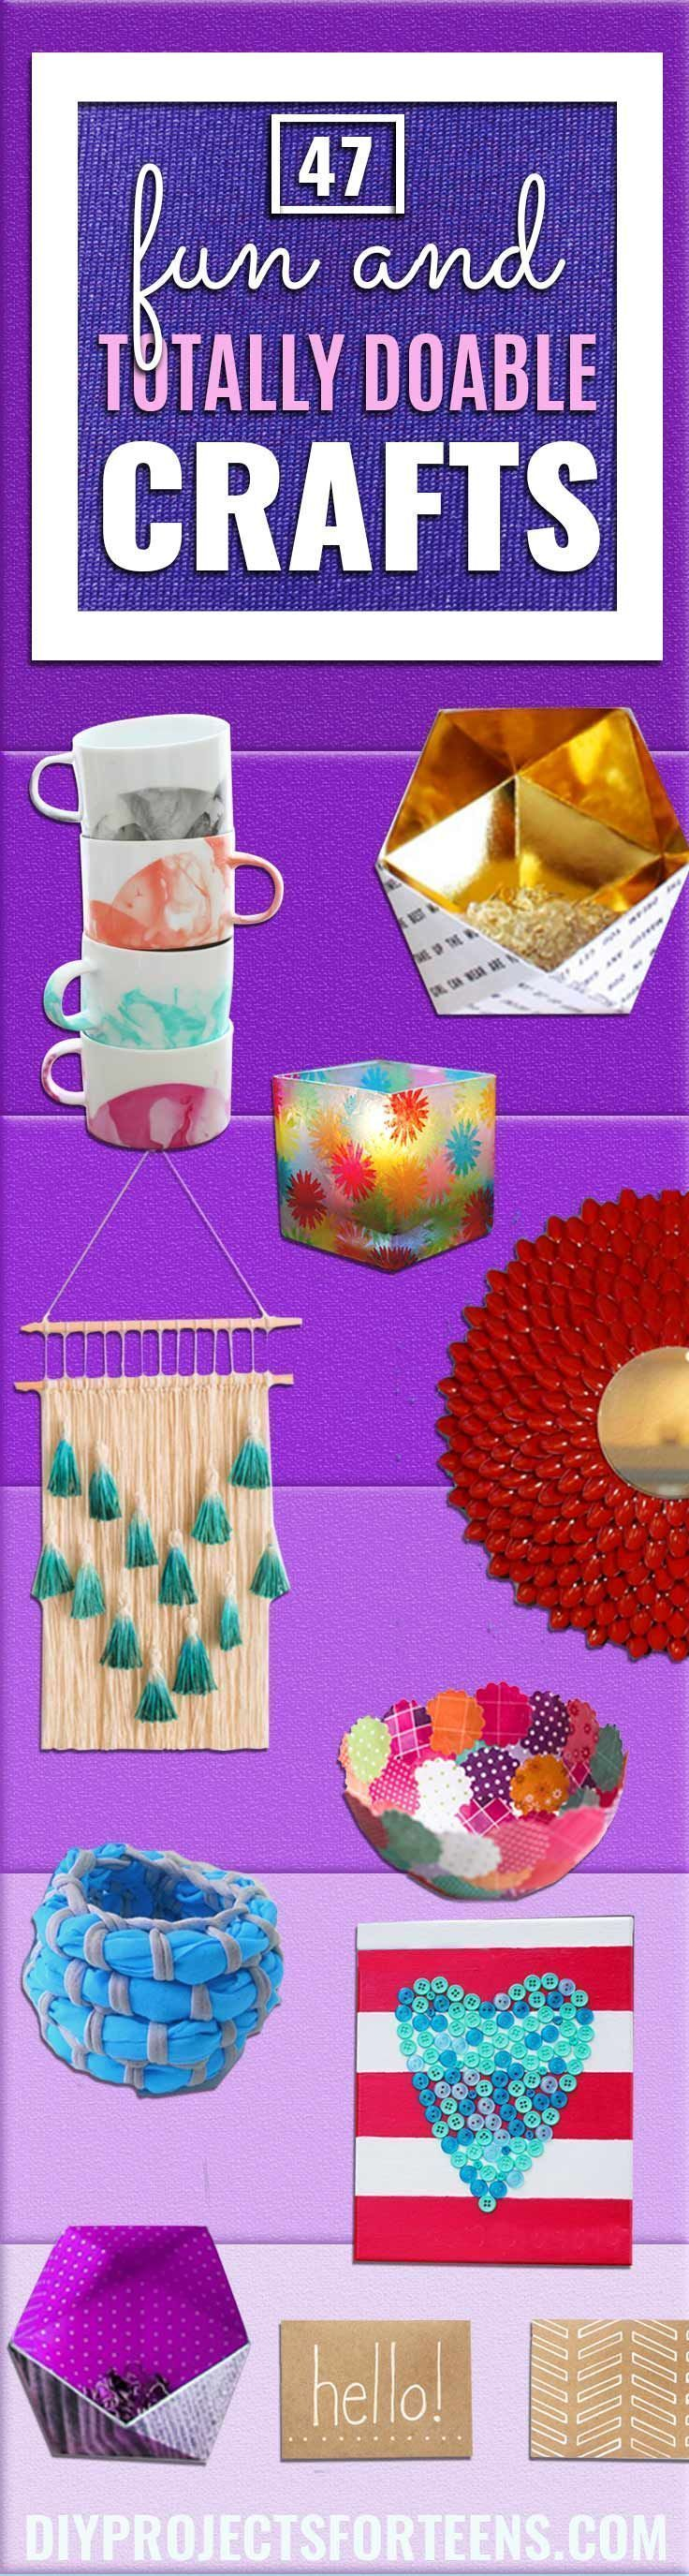 75 best images about crafts to sell on pinterest crafts for Do it yourself projects to sell